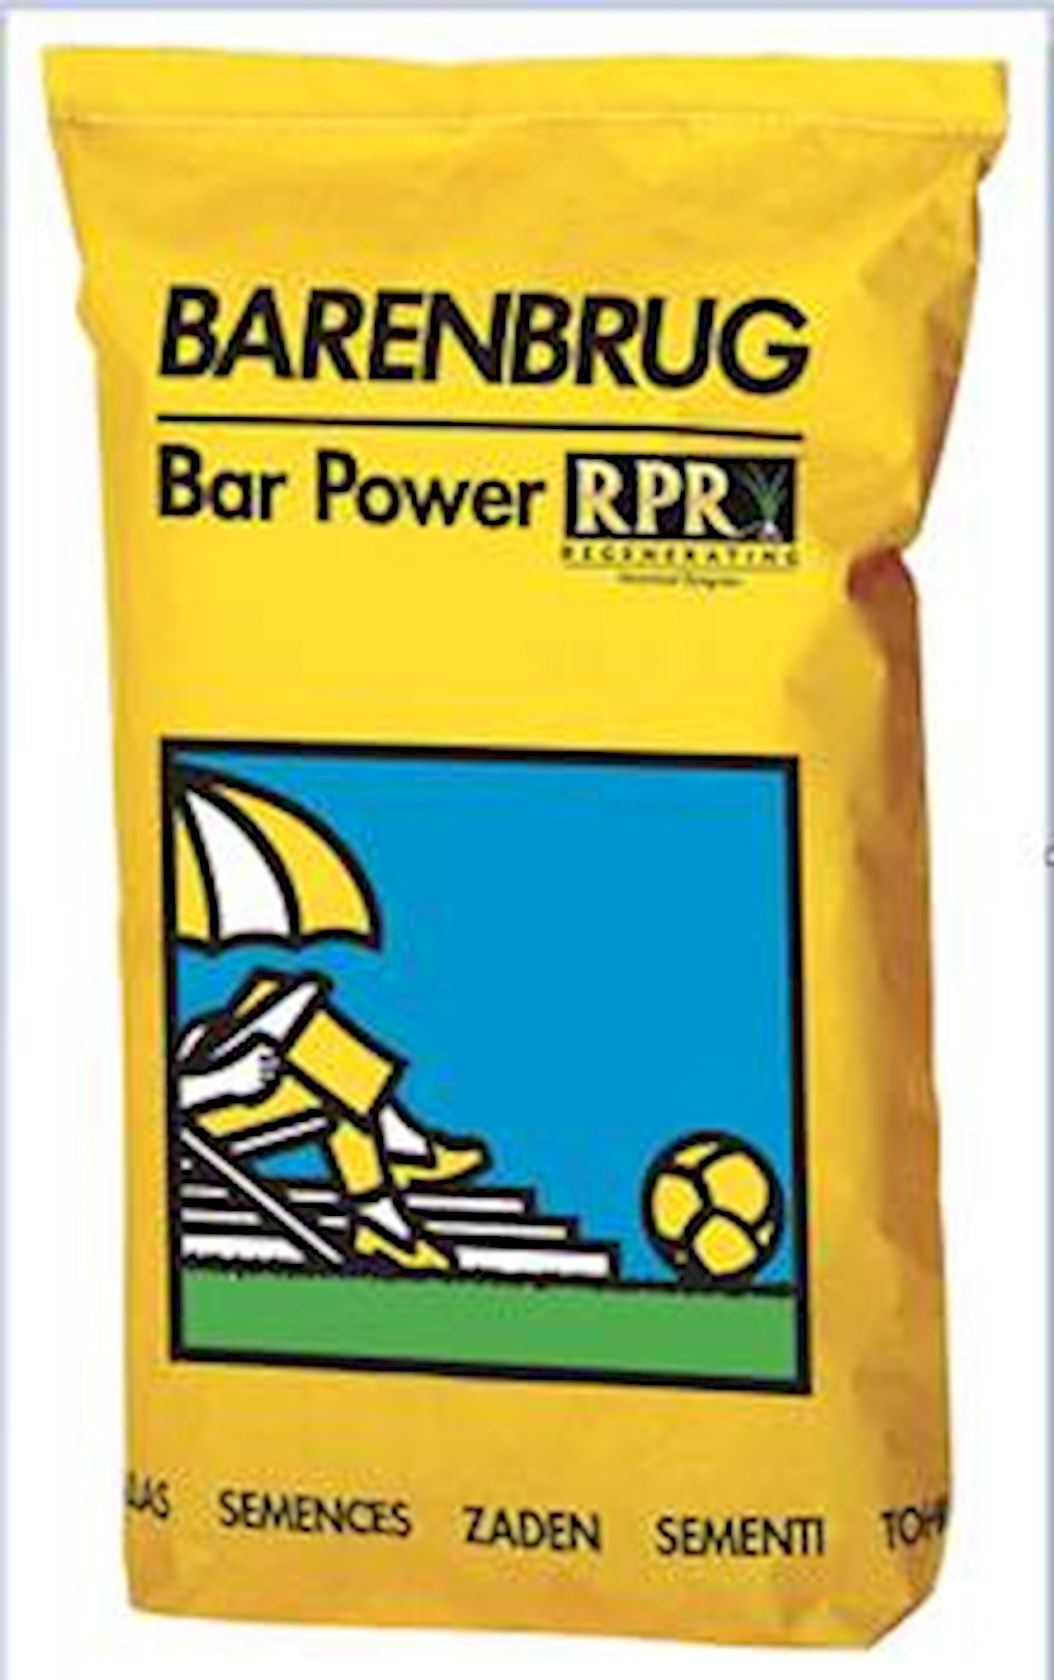 Bar Power RPR - extreem sterk gazon 15Kg met coating (yellow Jacket water management)